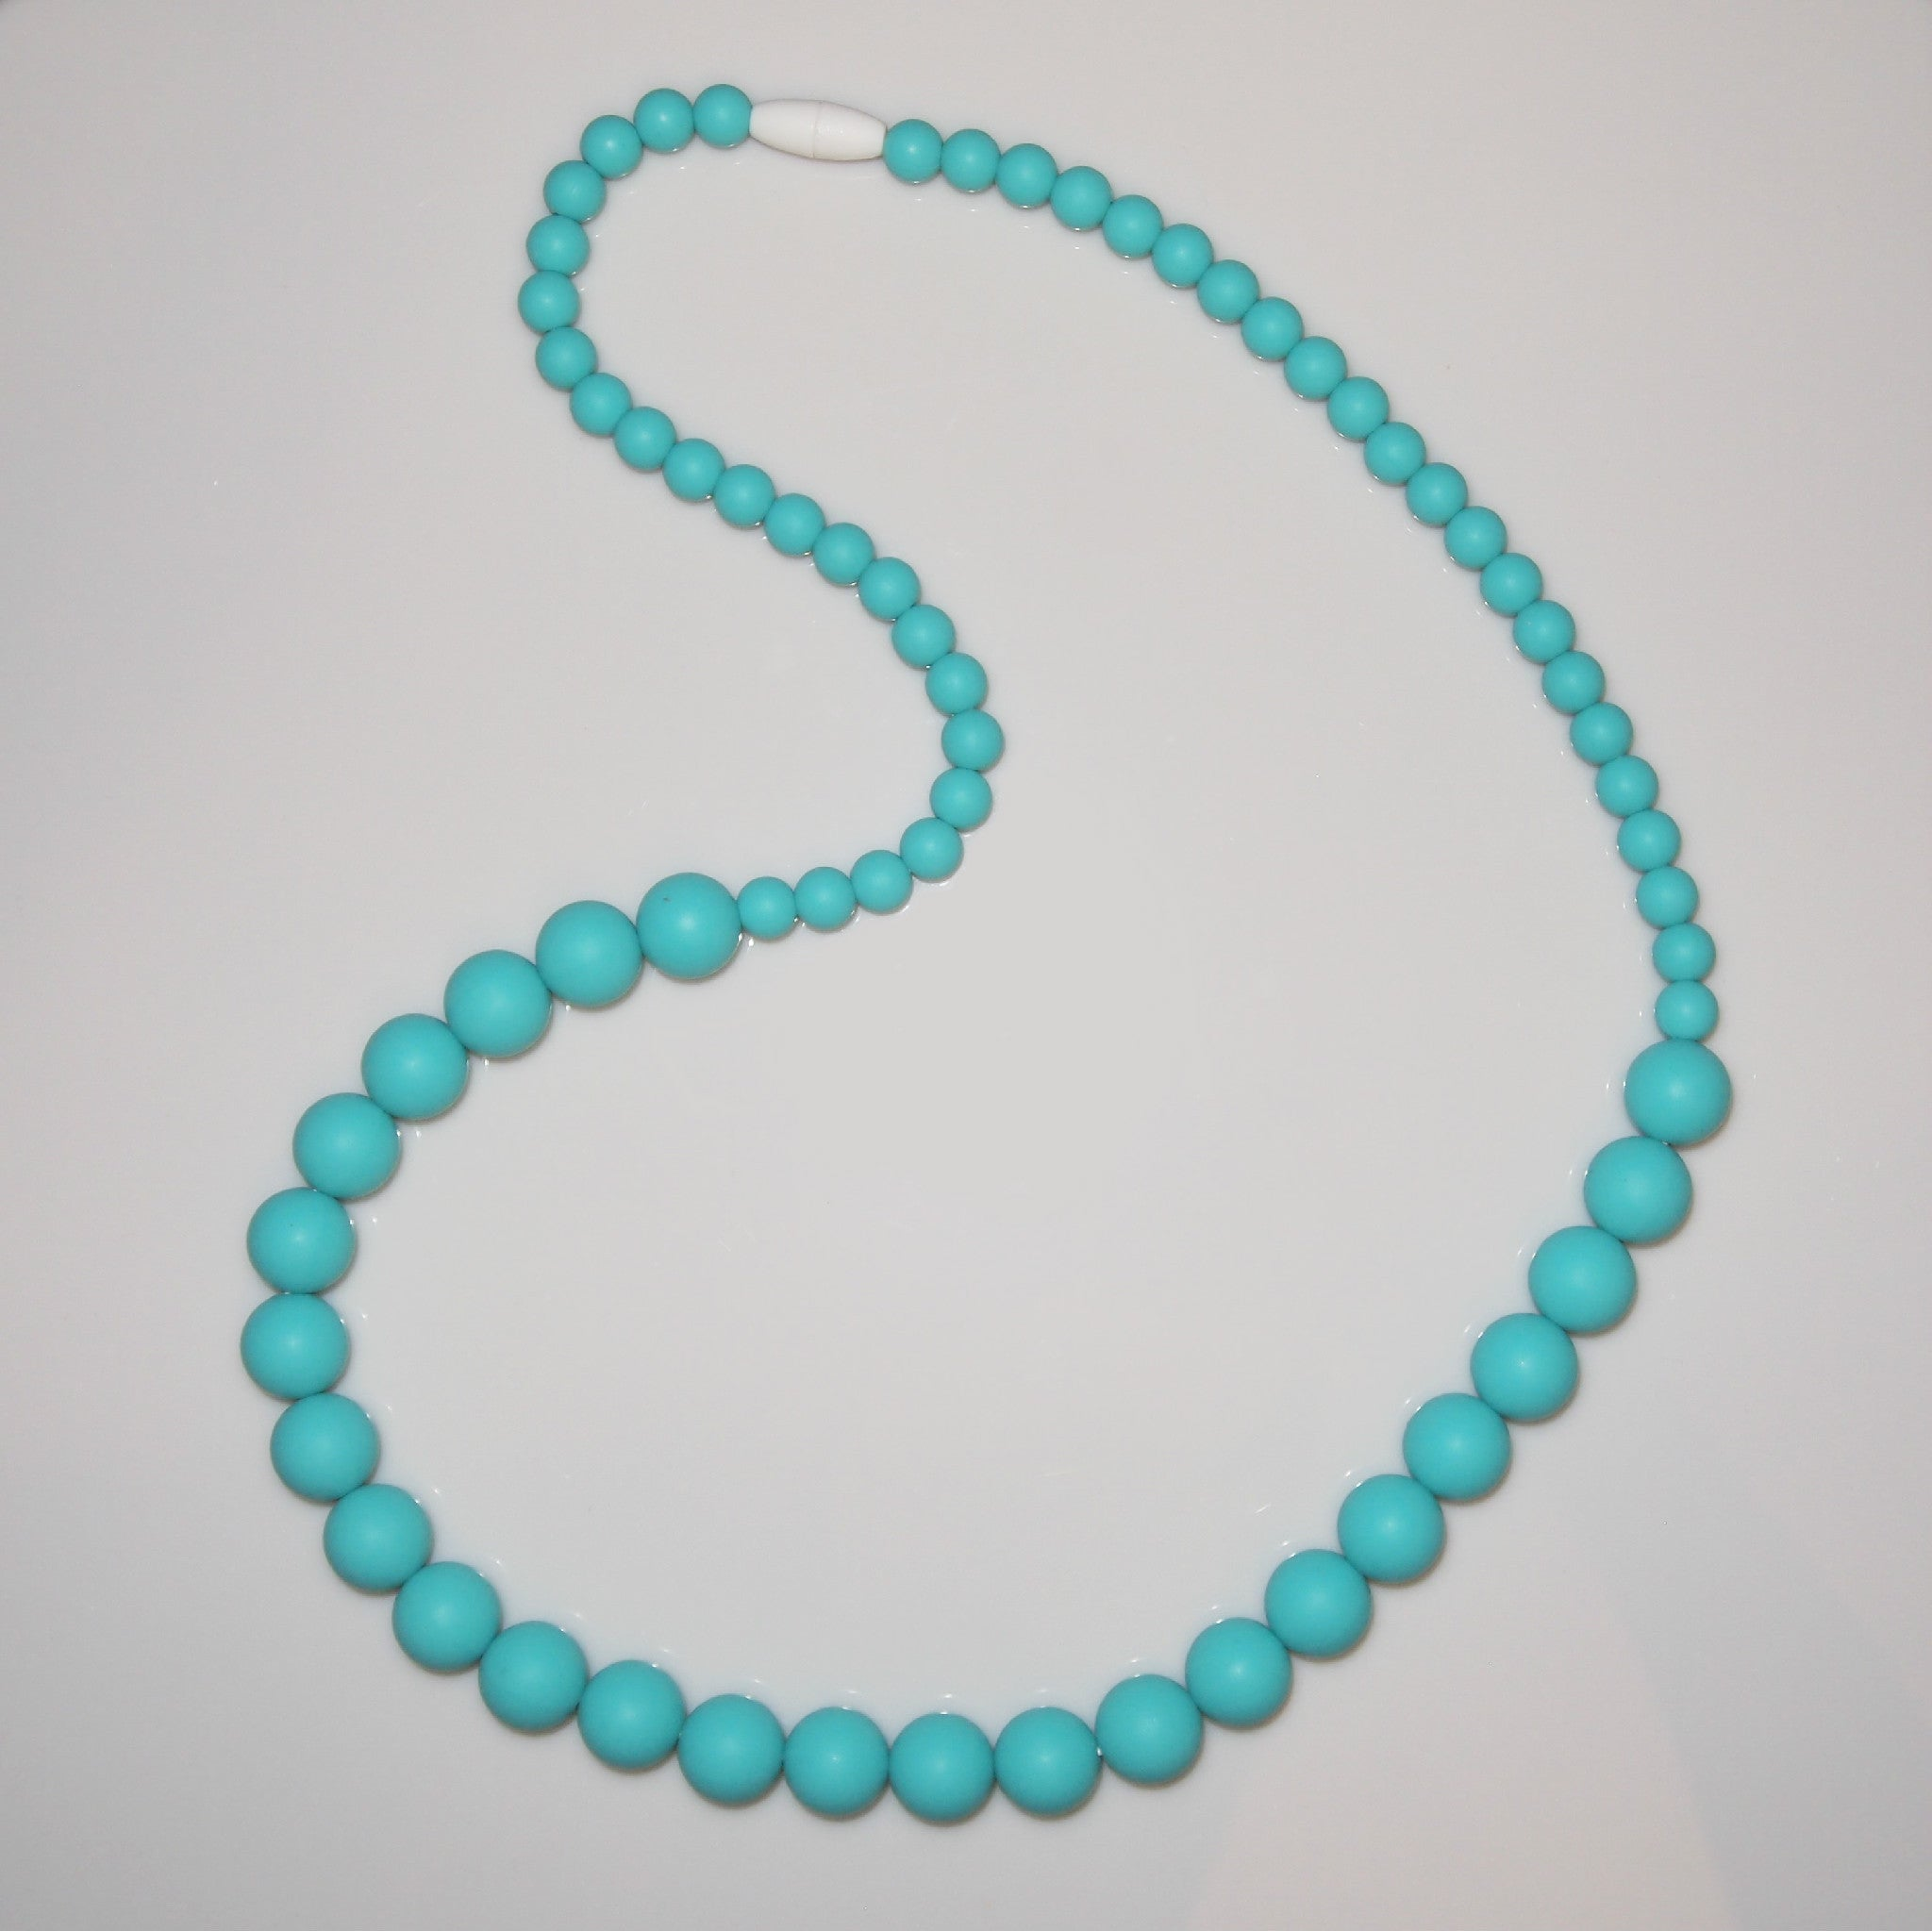 Silicone Round Bead Teething Necklace - Aqua - Find Something Special